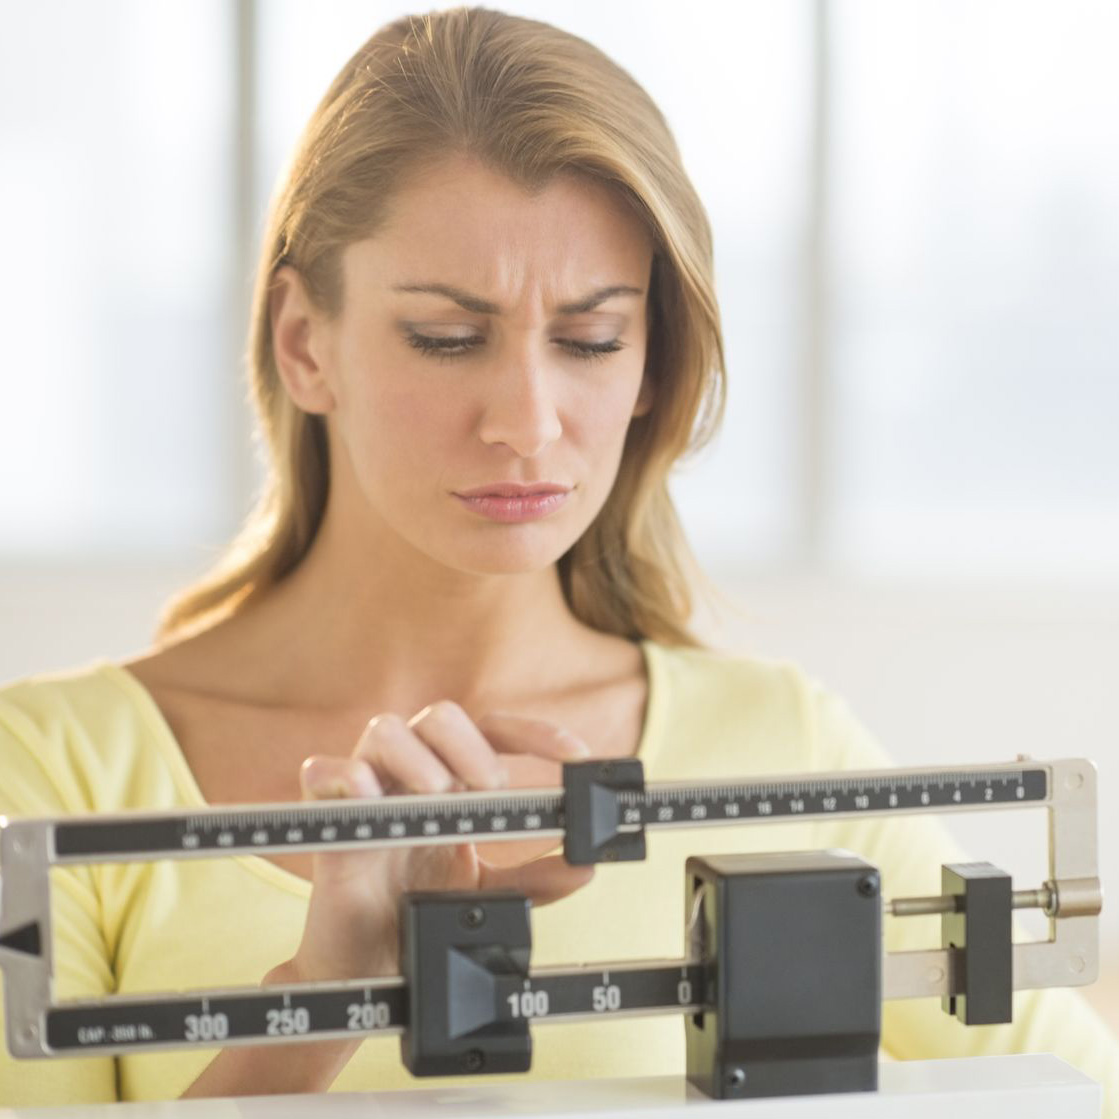 5 Common Mistakes to Avoid for Healthy Weight Loss